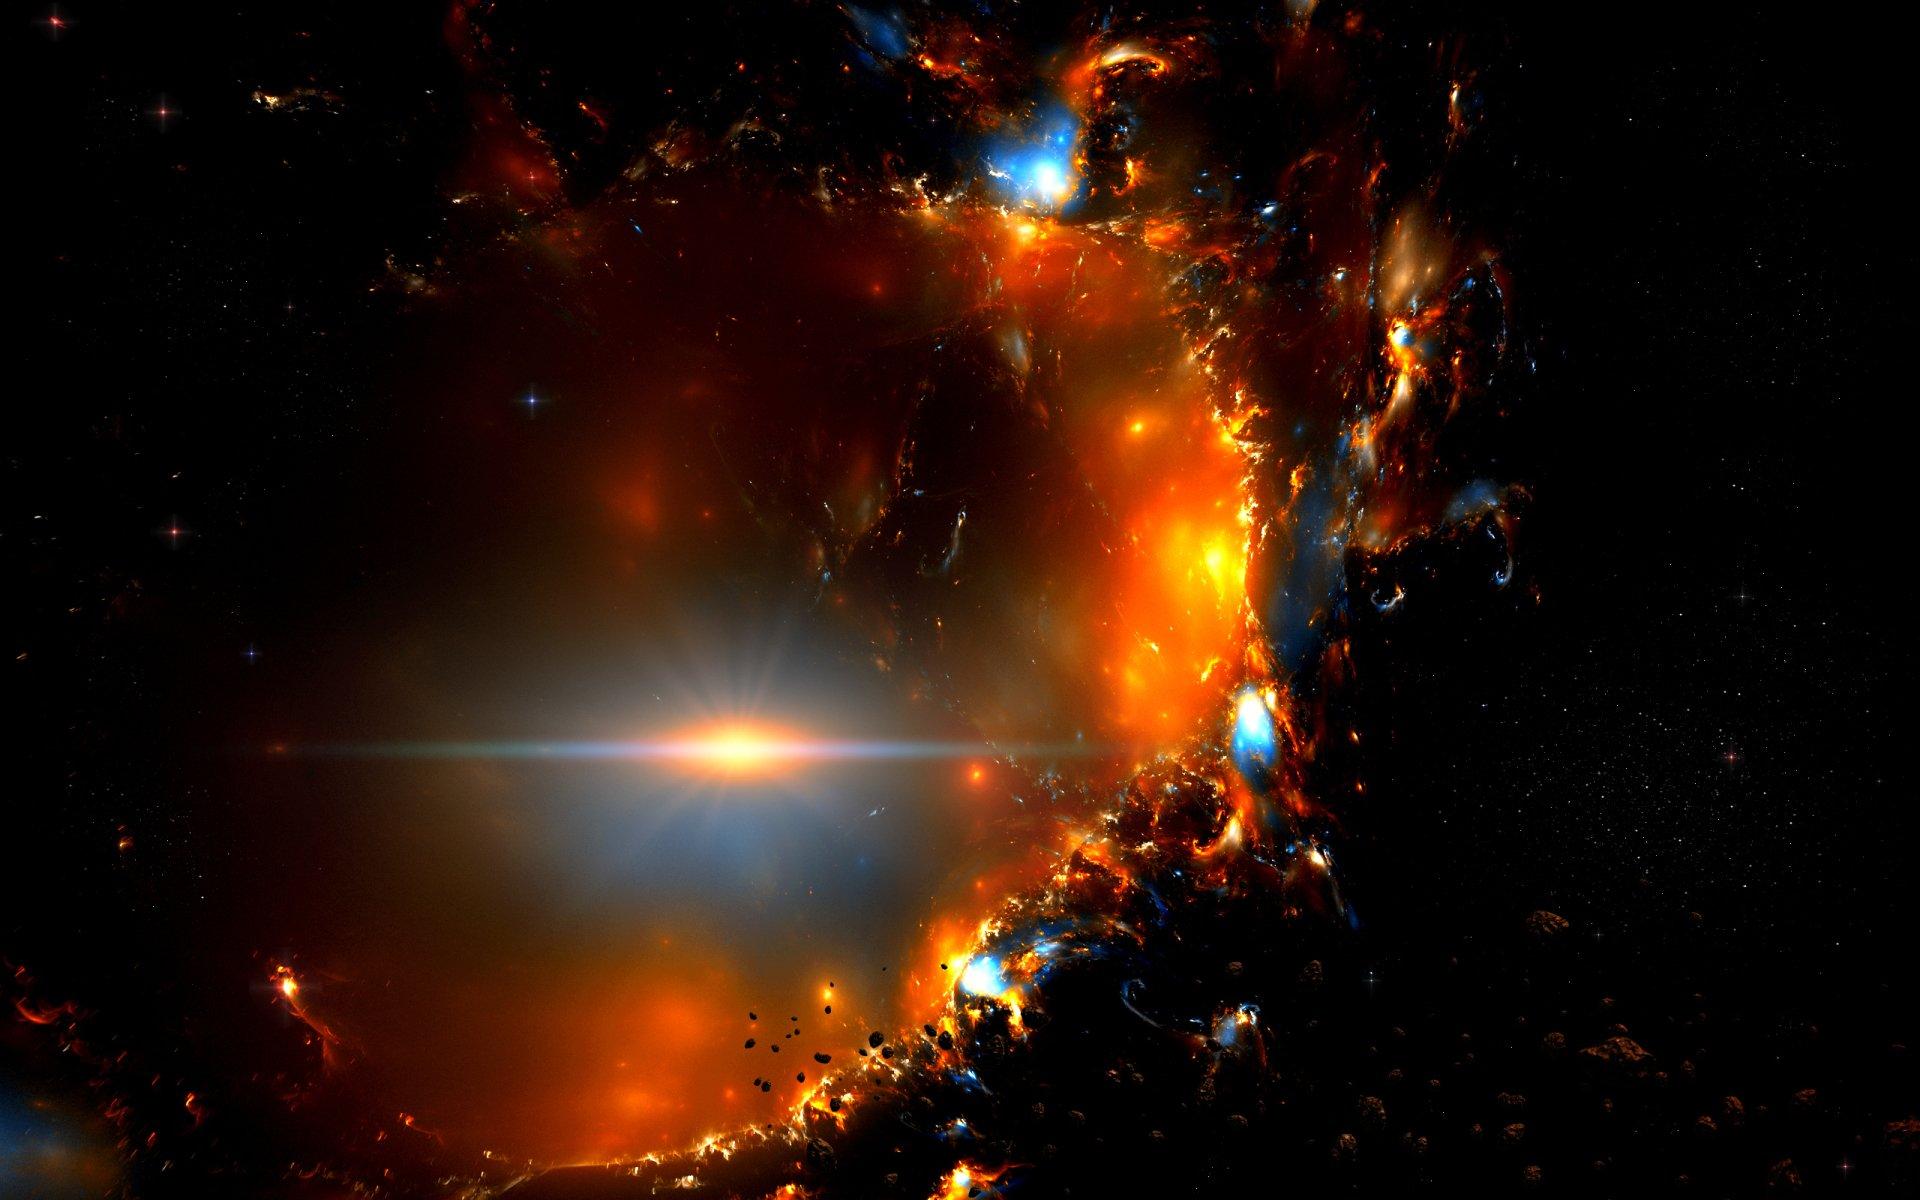 Sci Fi - Explosion  Space Wallpaper